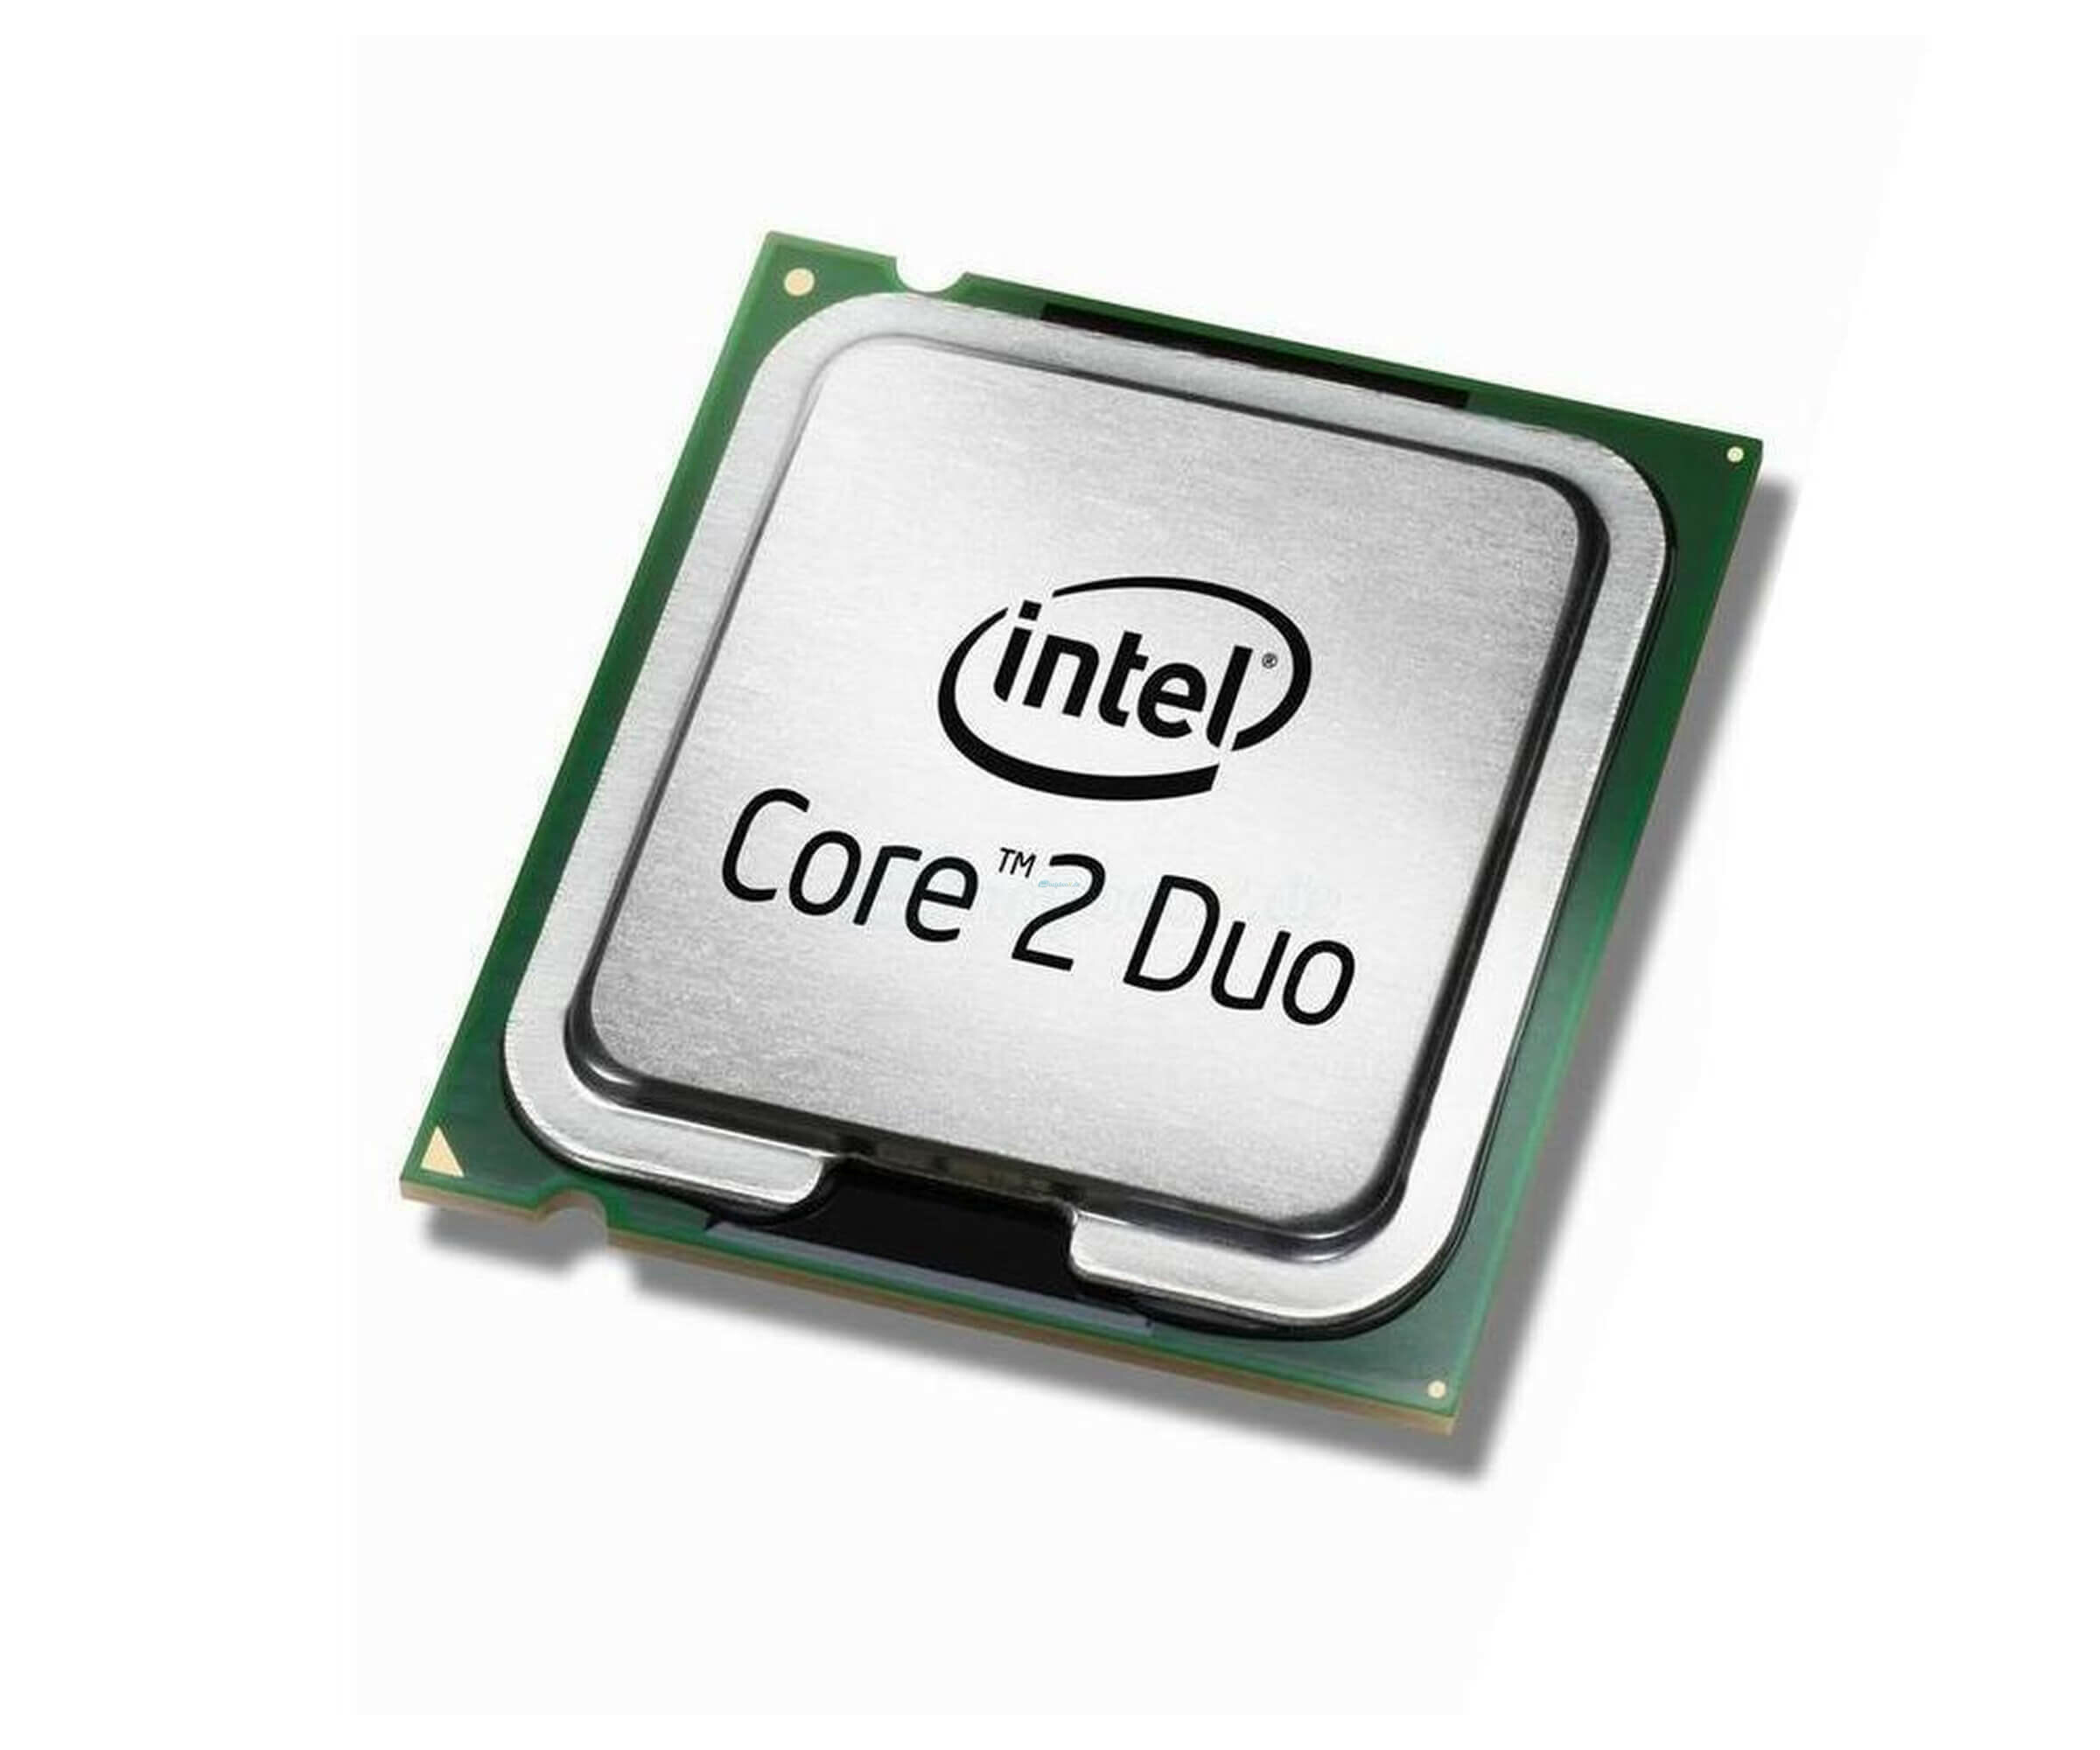 Intel Core 2 Duo E4700 - 2.60 GHz Prozessor - LGA775 Socket - L2 2 MB - 2-Core